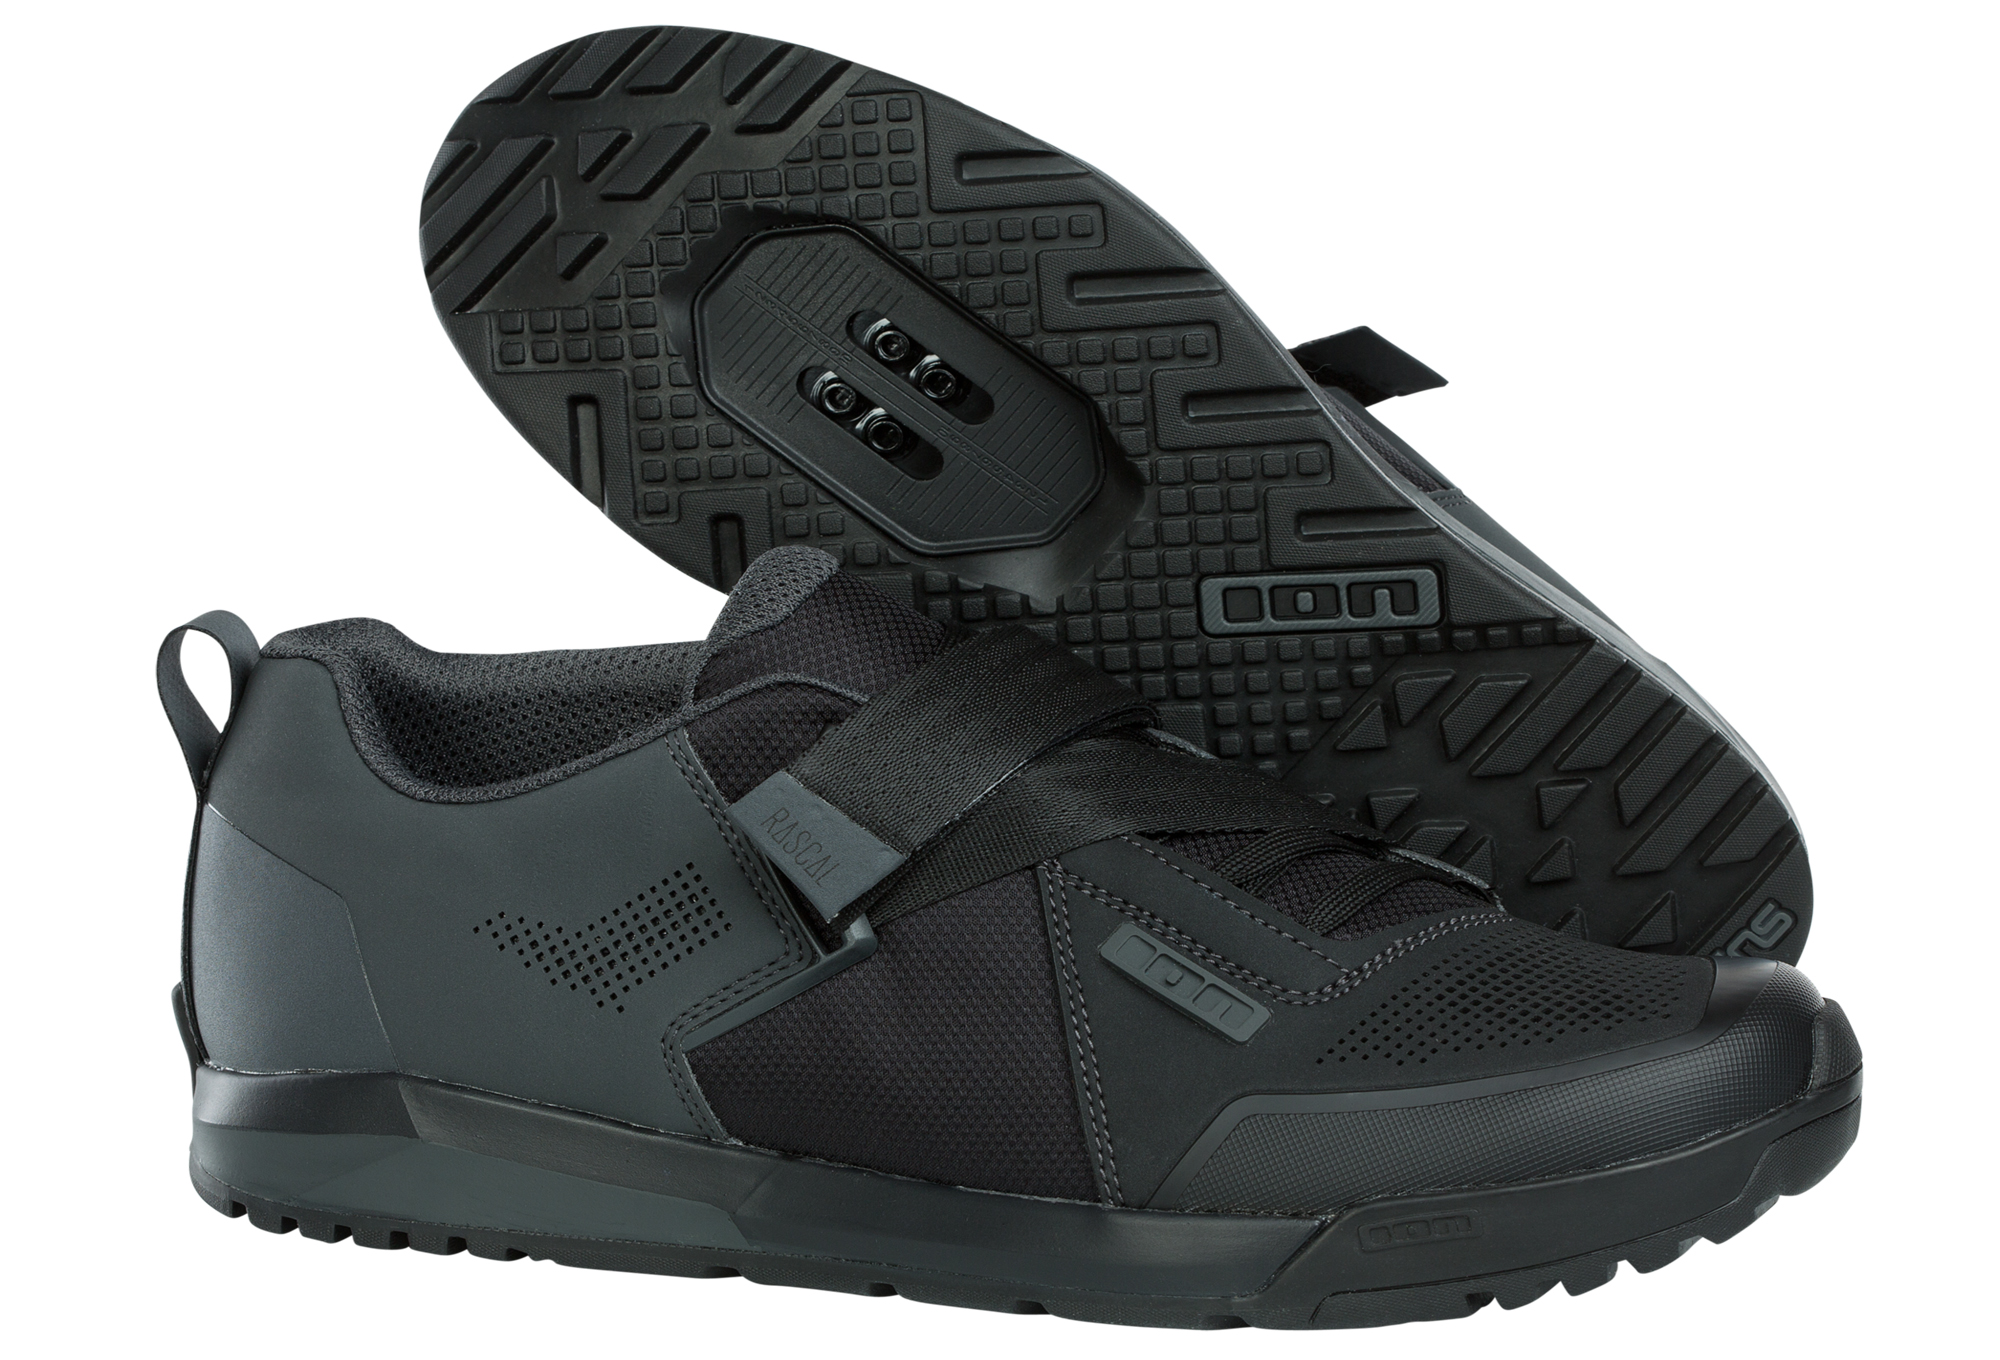 Chaussures Ion noires homme ynj8xr